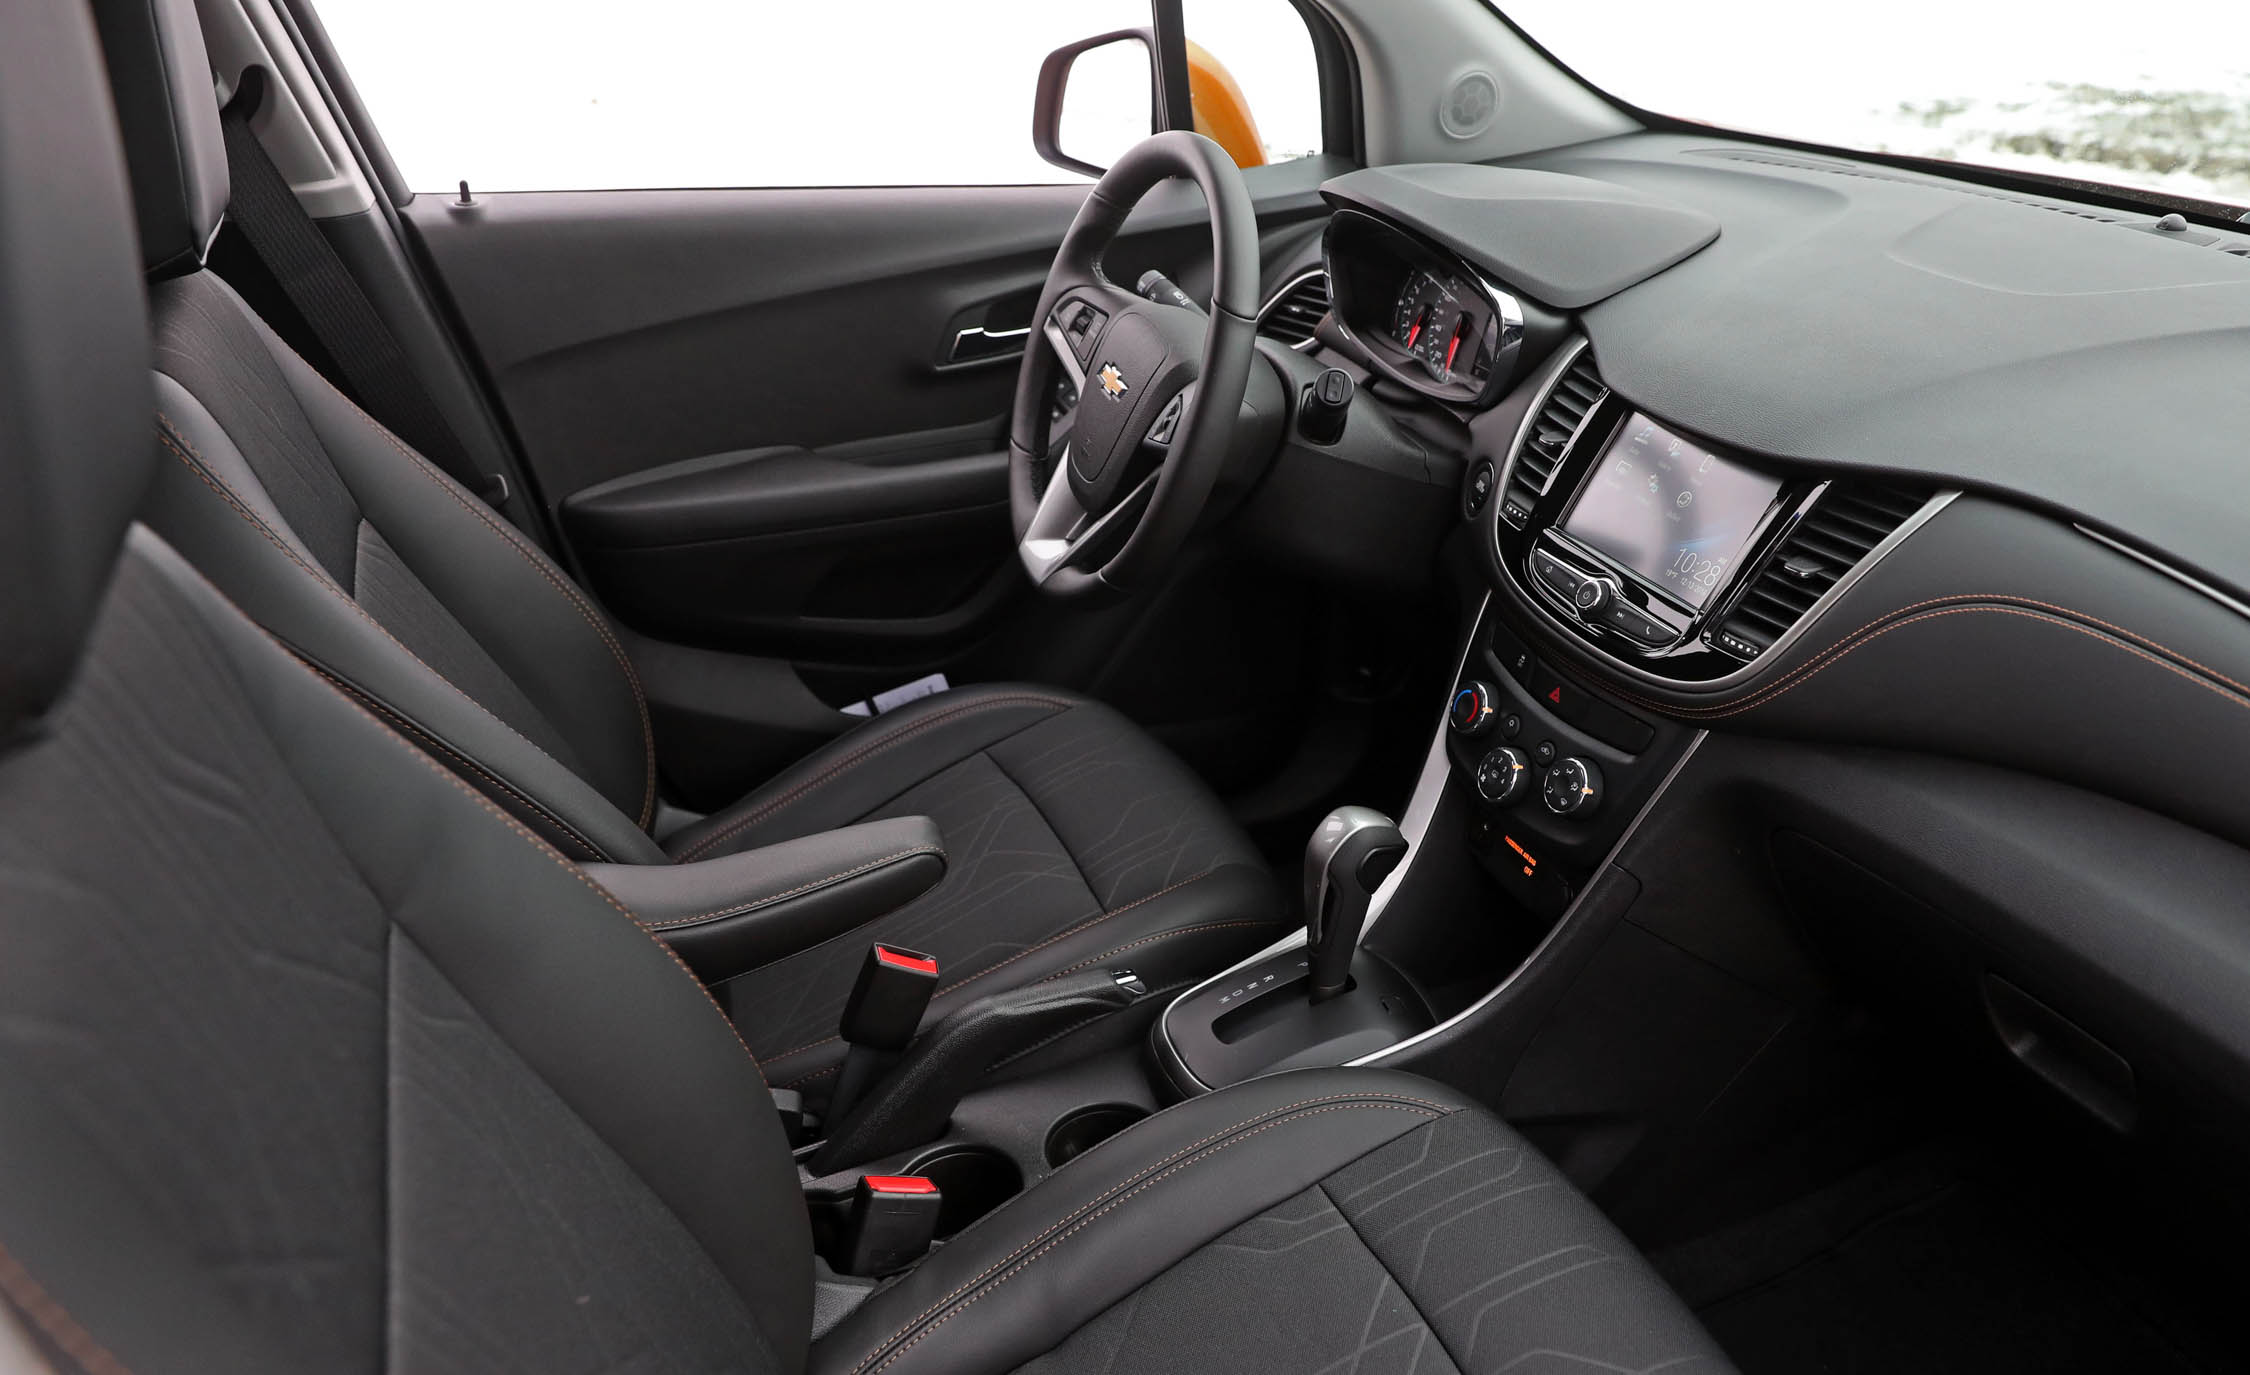 2017 Chevrolet Trax Interior Cockpit And Dashboard (Photo 16 of 47)